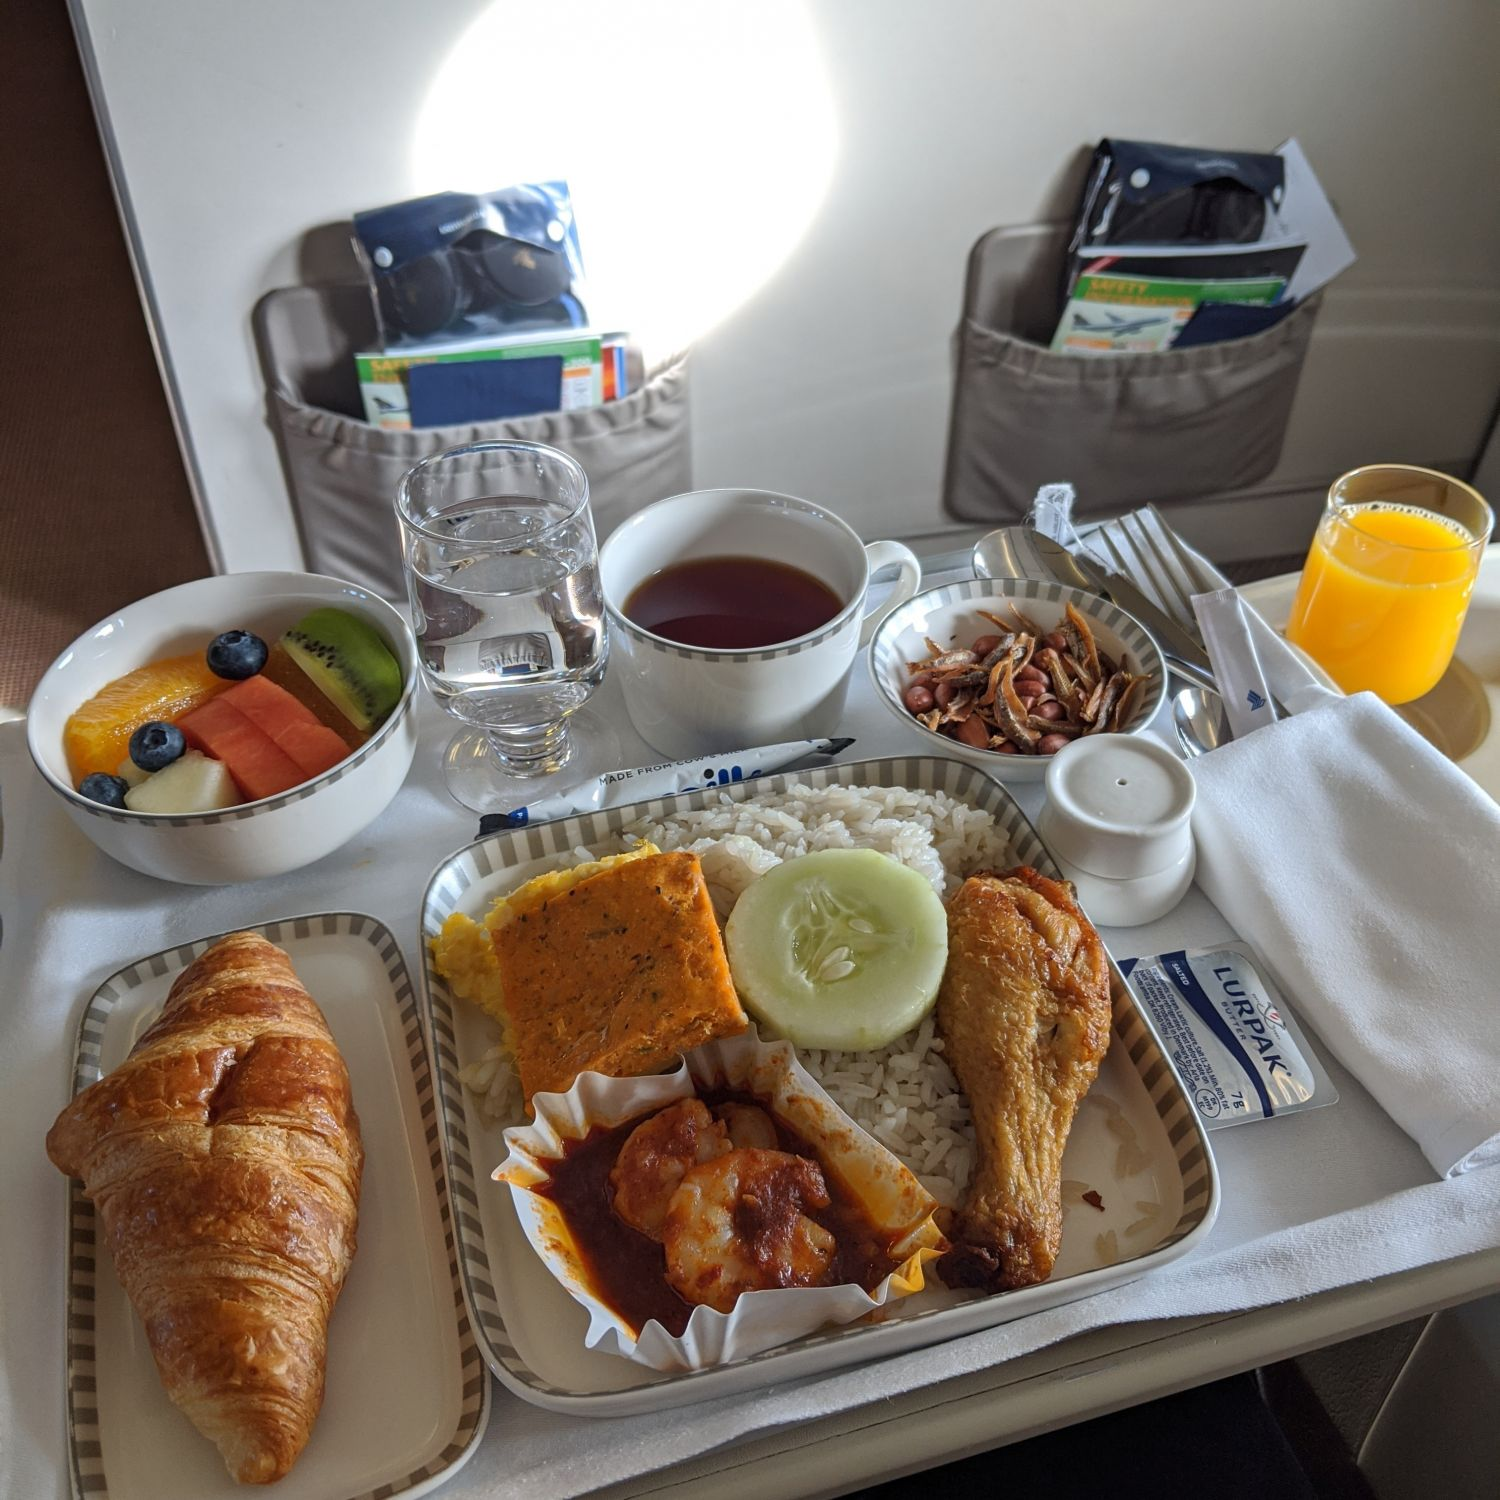 Regional Business Class on Singapore Airlines SQ998 Airbus A330-300 Book the Cook Nasi Lemak